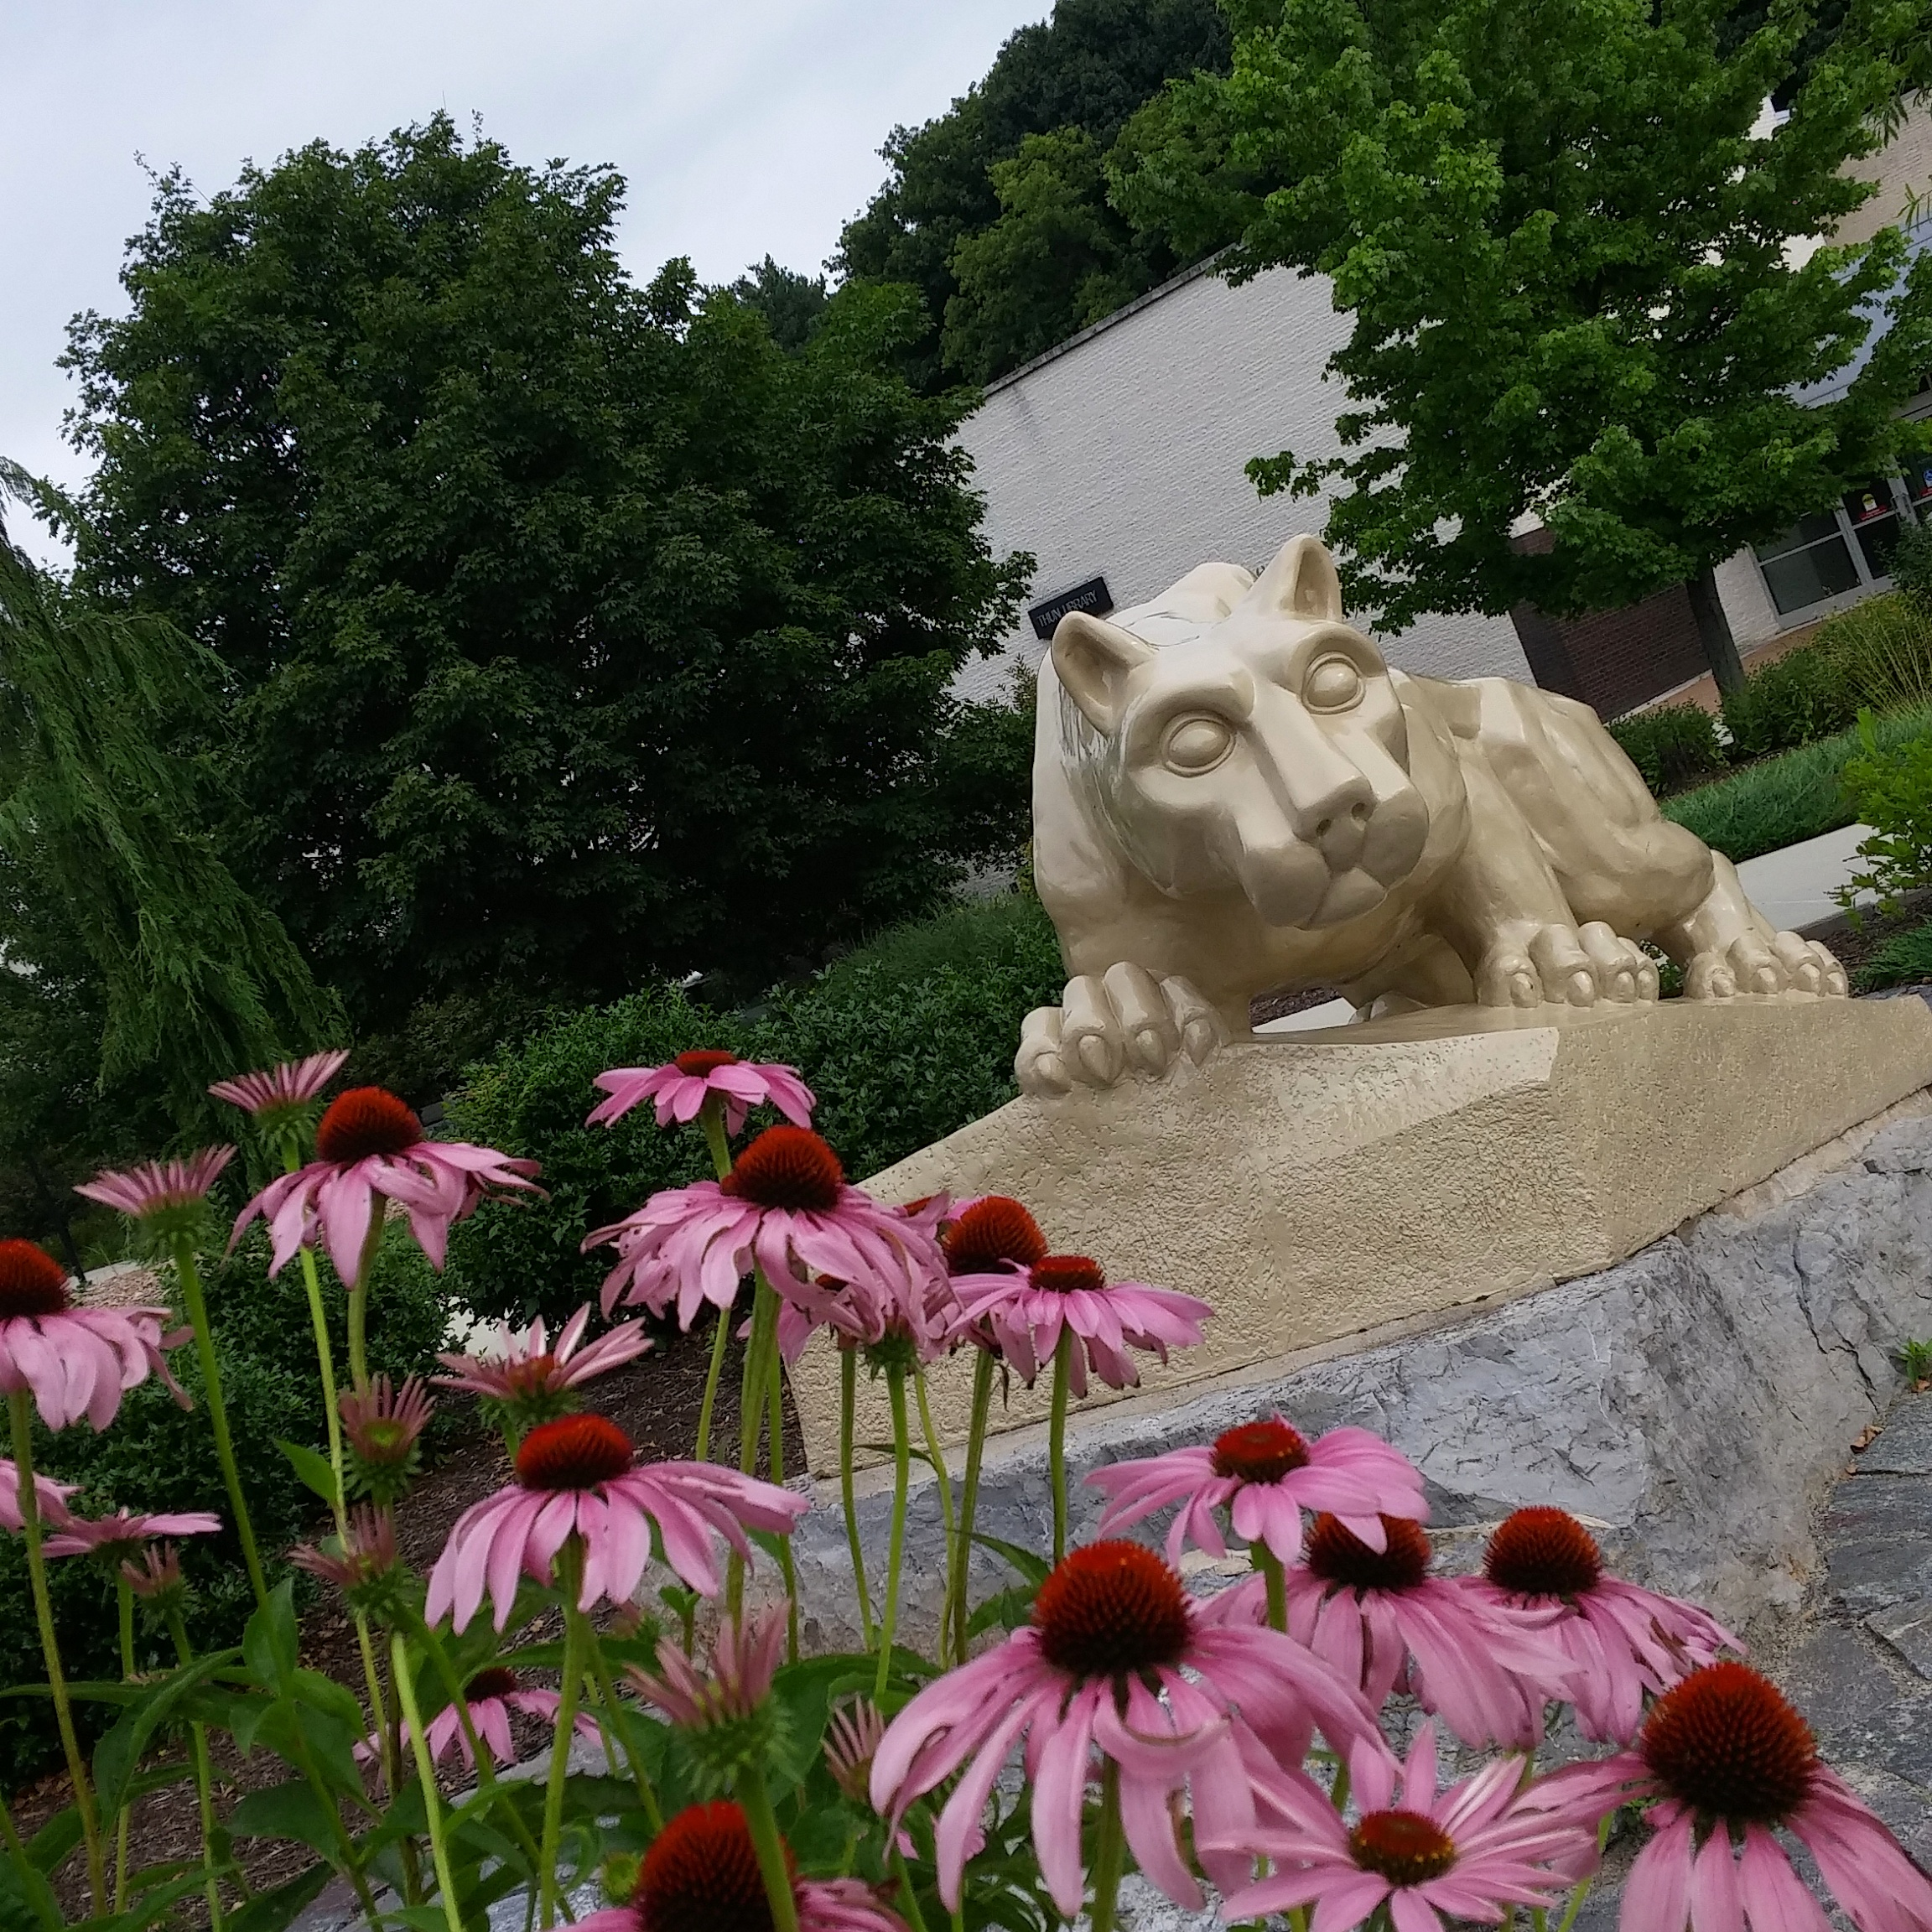 Nittany Lion Statue at Berks Campus